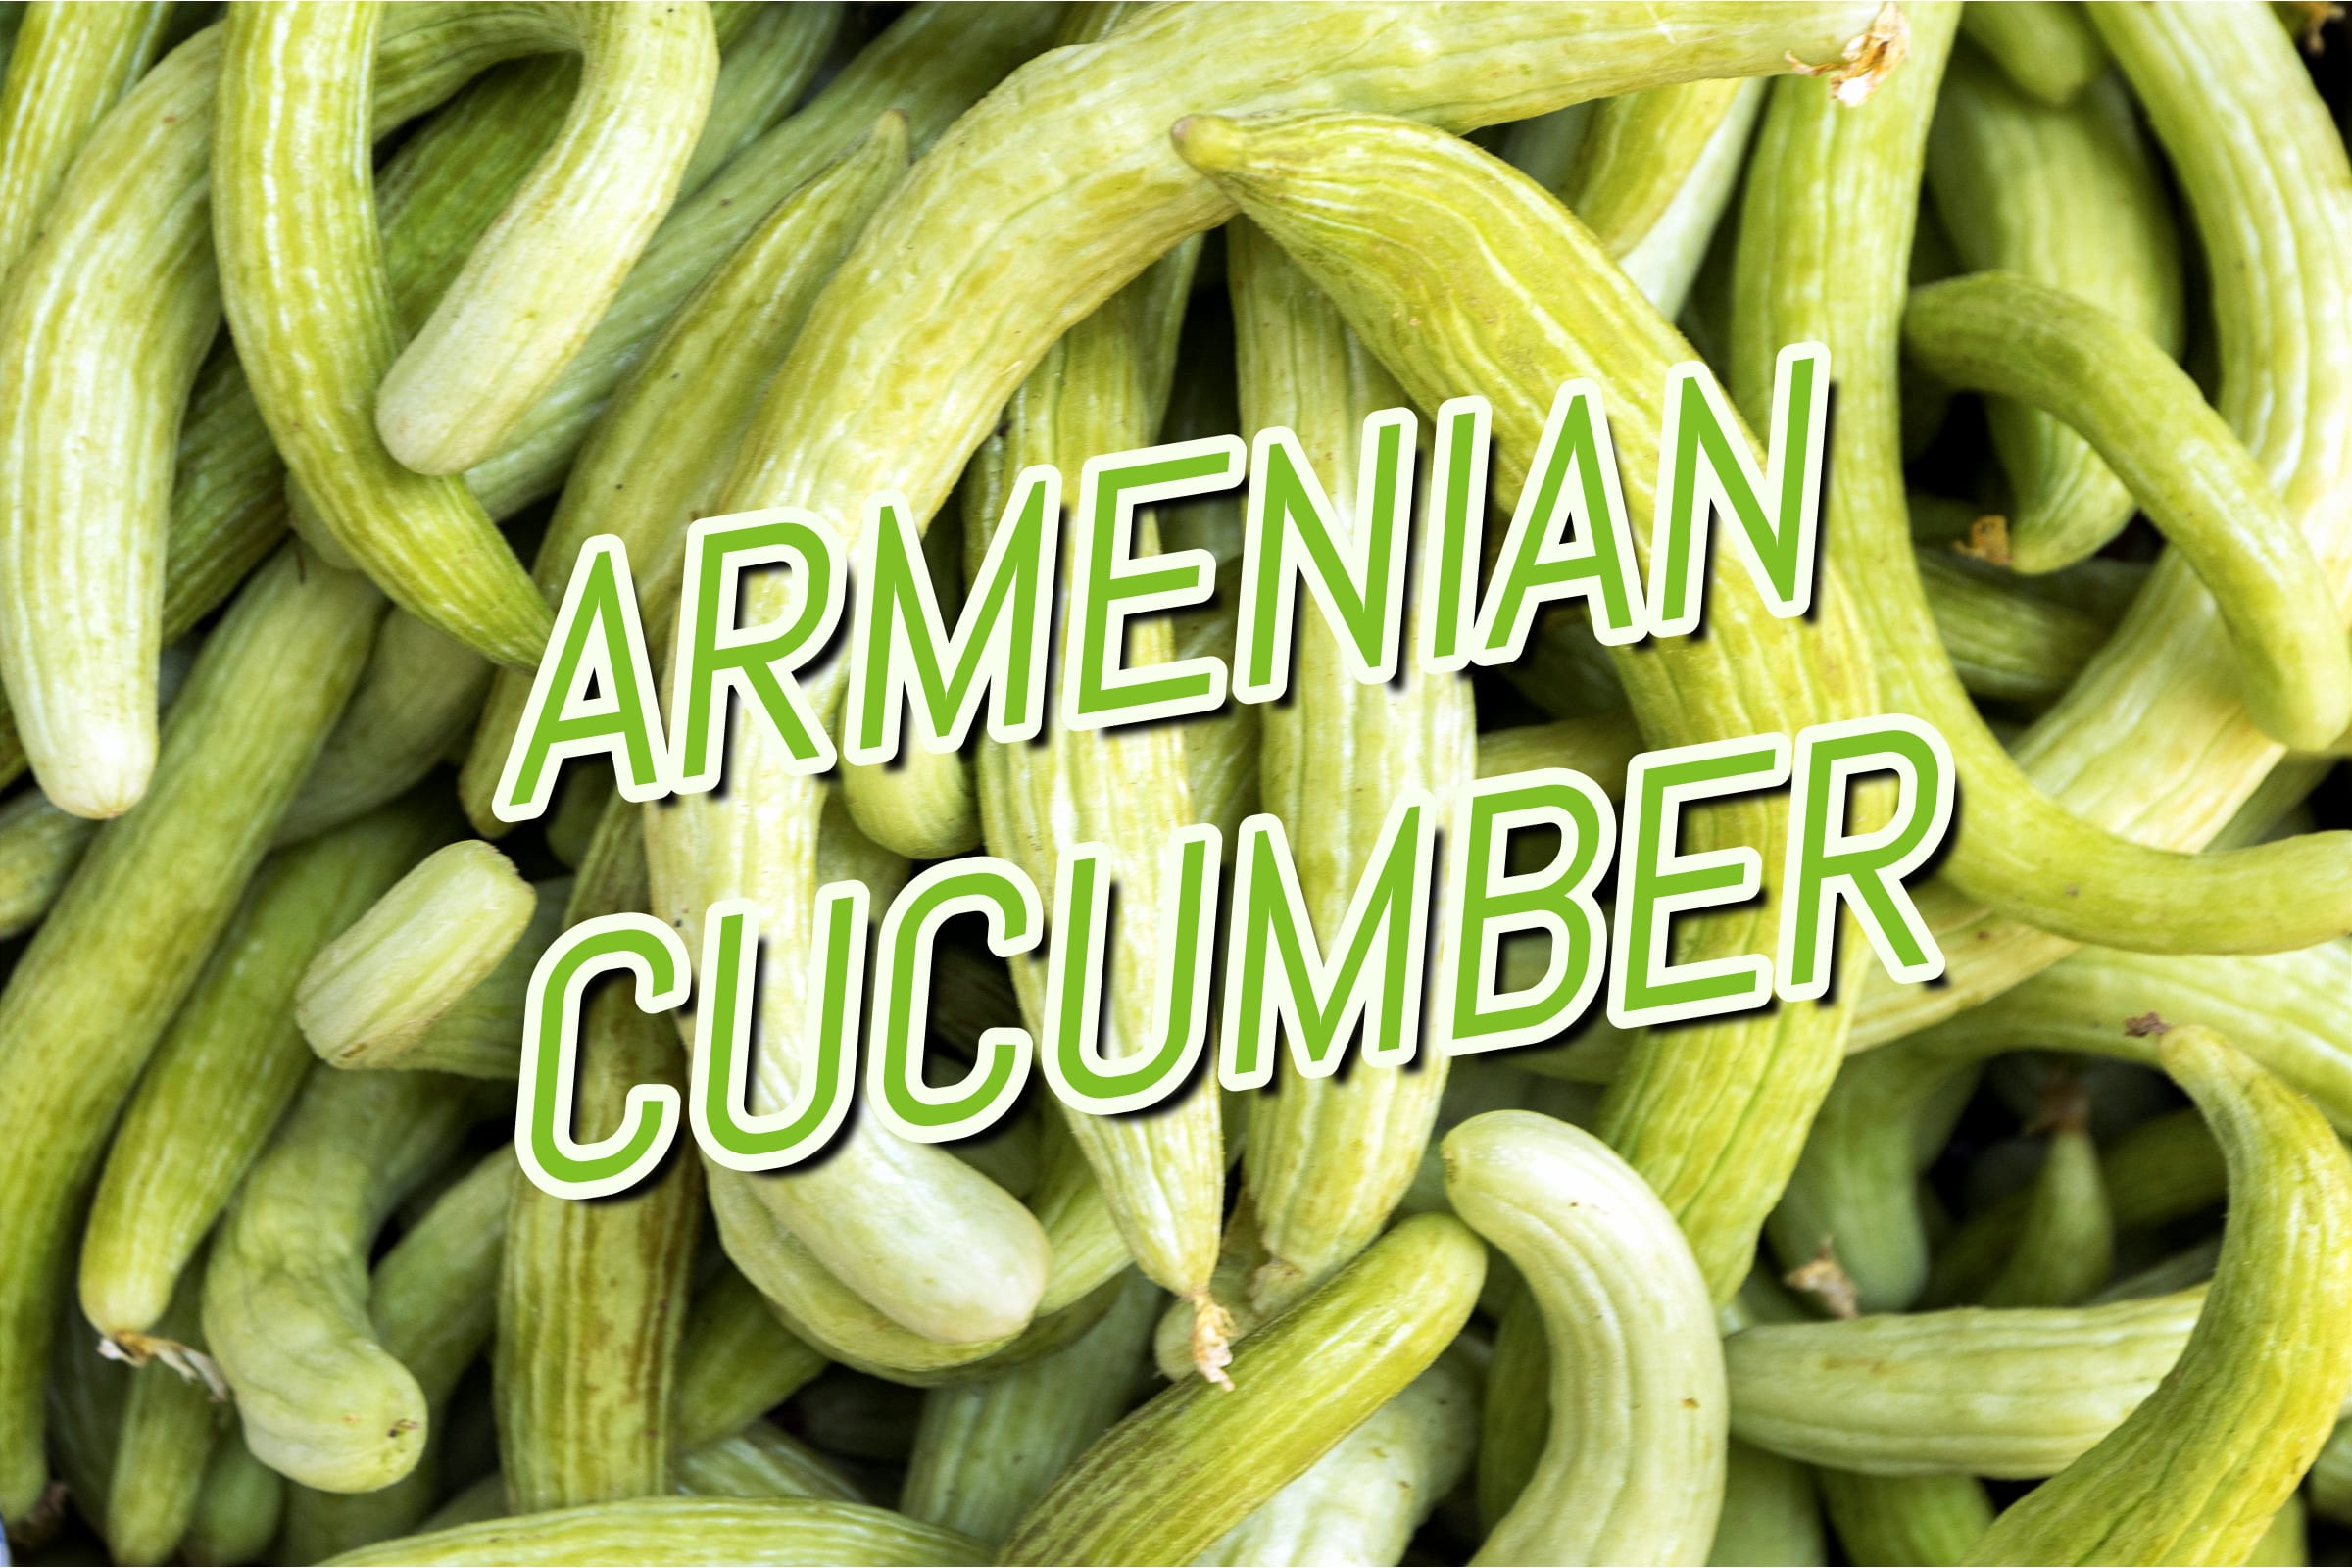 What Is The Armenian Cucumber Plant?